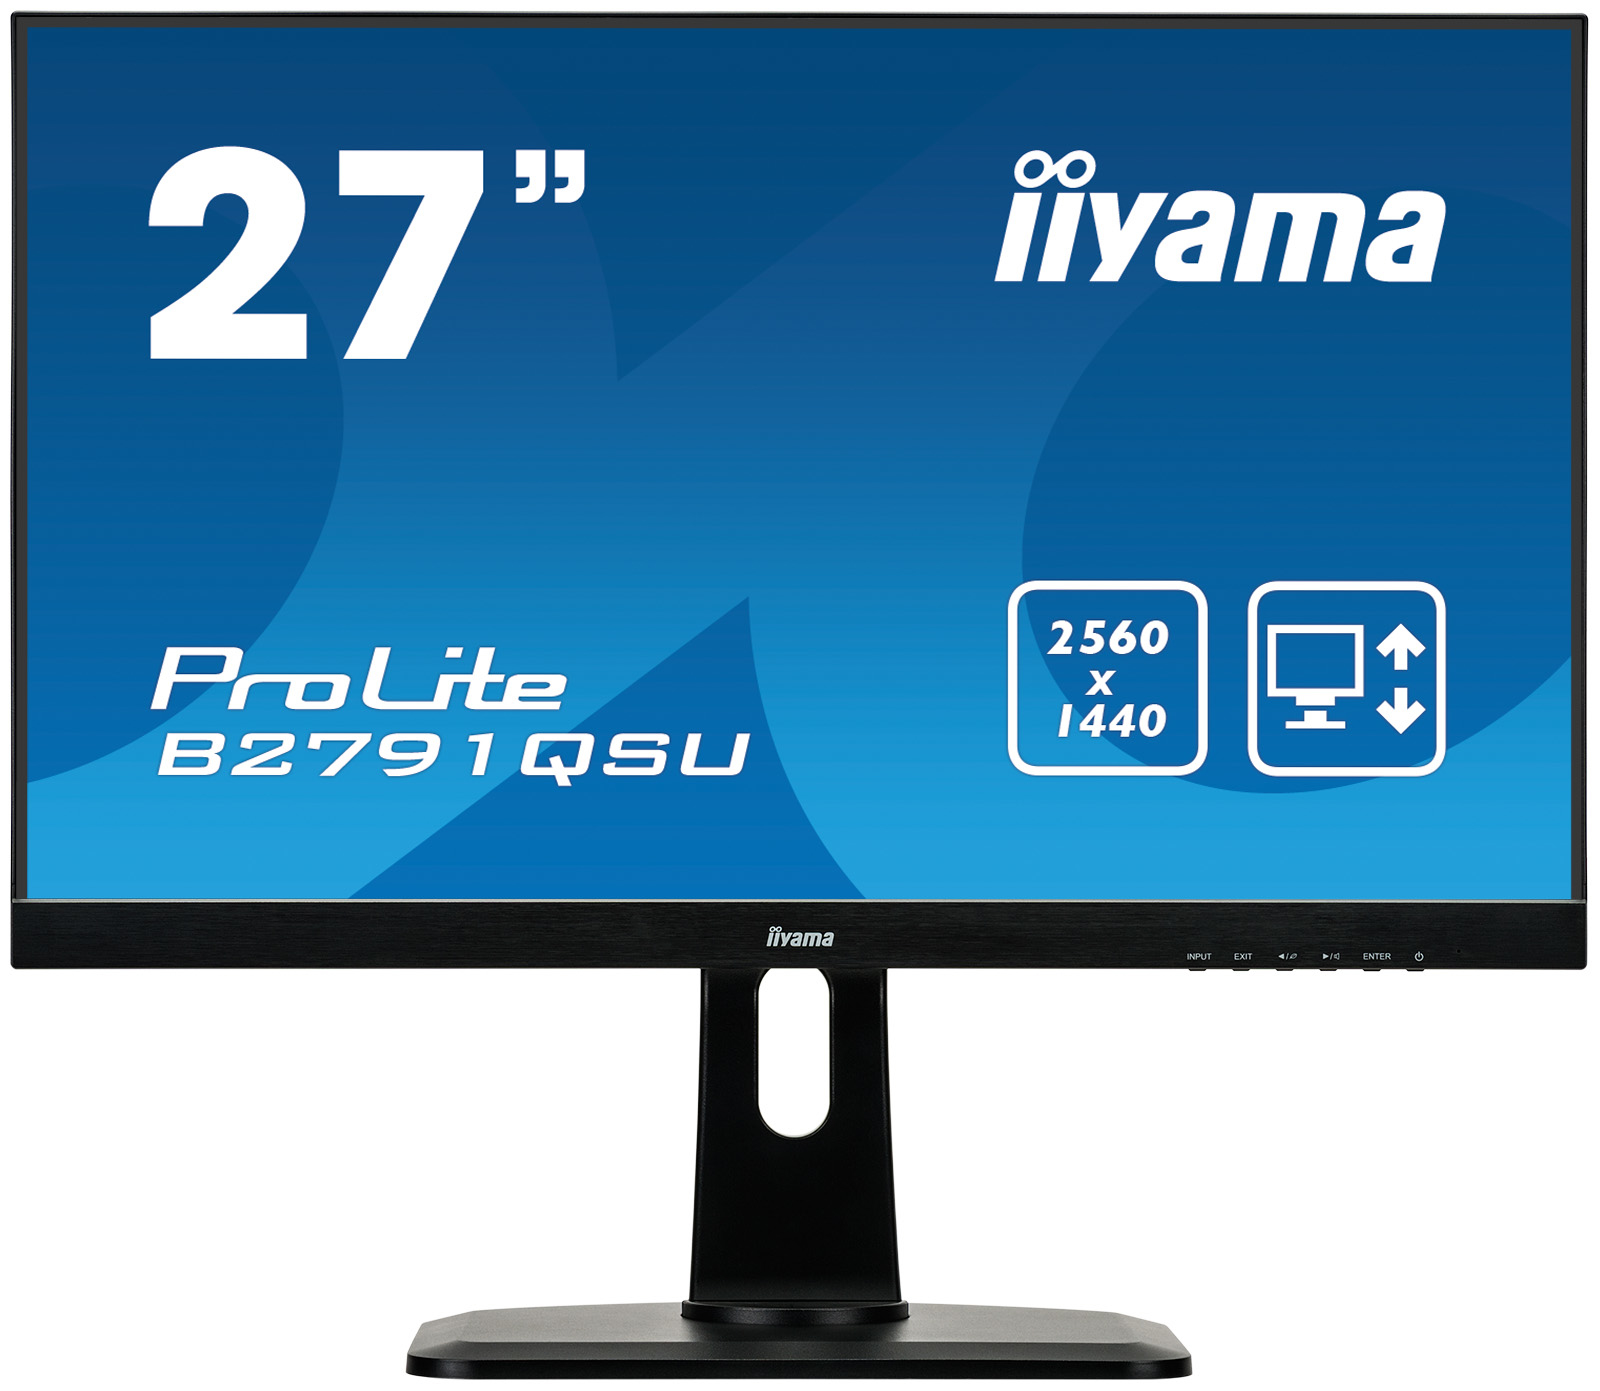 "Iiyama ProLite B2791QSU-B1 - LED Monitor - 27"" (27"" Viewable) - 2560 X 1440 1440p (Quad HD) - TN - 350 Cd/m - 1000:1 - 1 Ms - HDMI, DVI, DisplayPort - Speakers - Black B2791QSU-B1 - C2000"